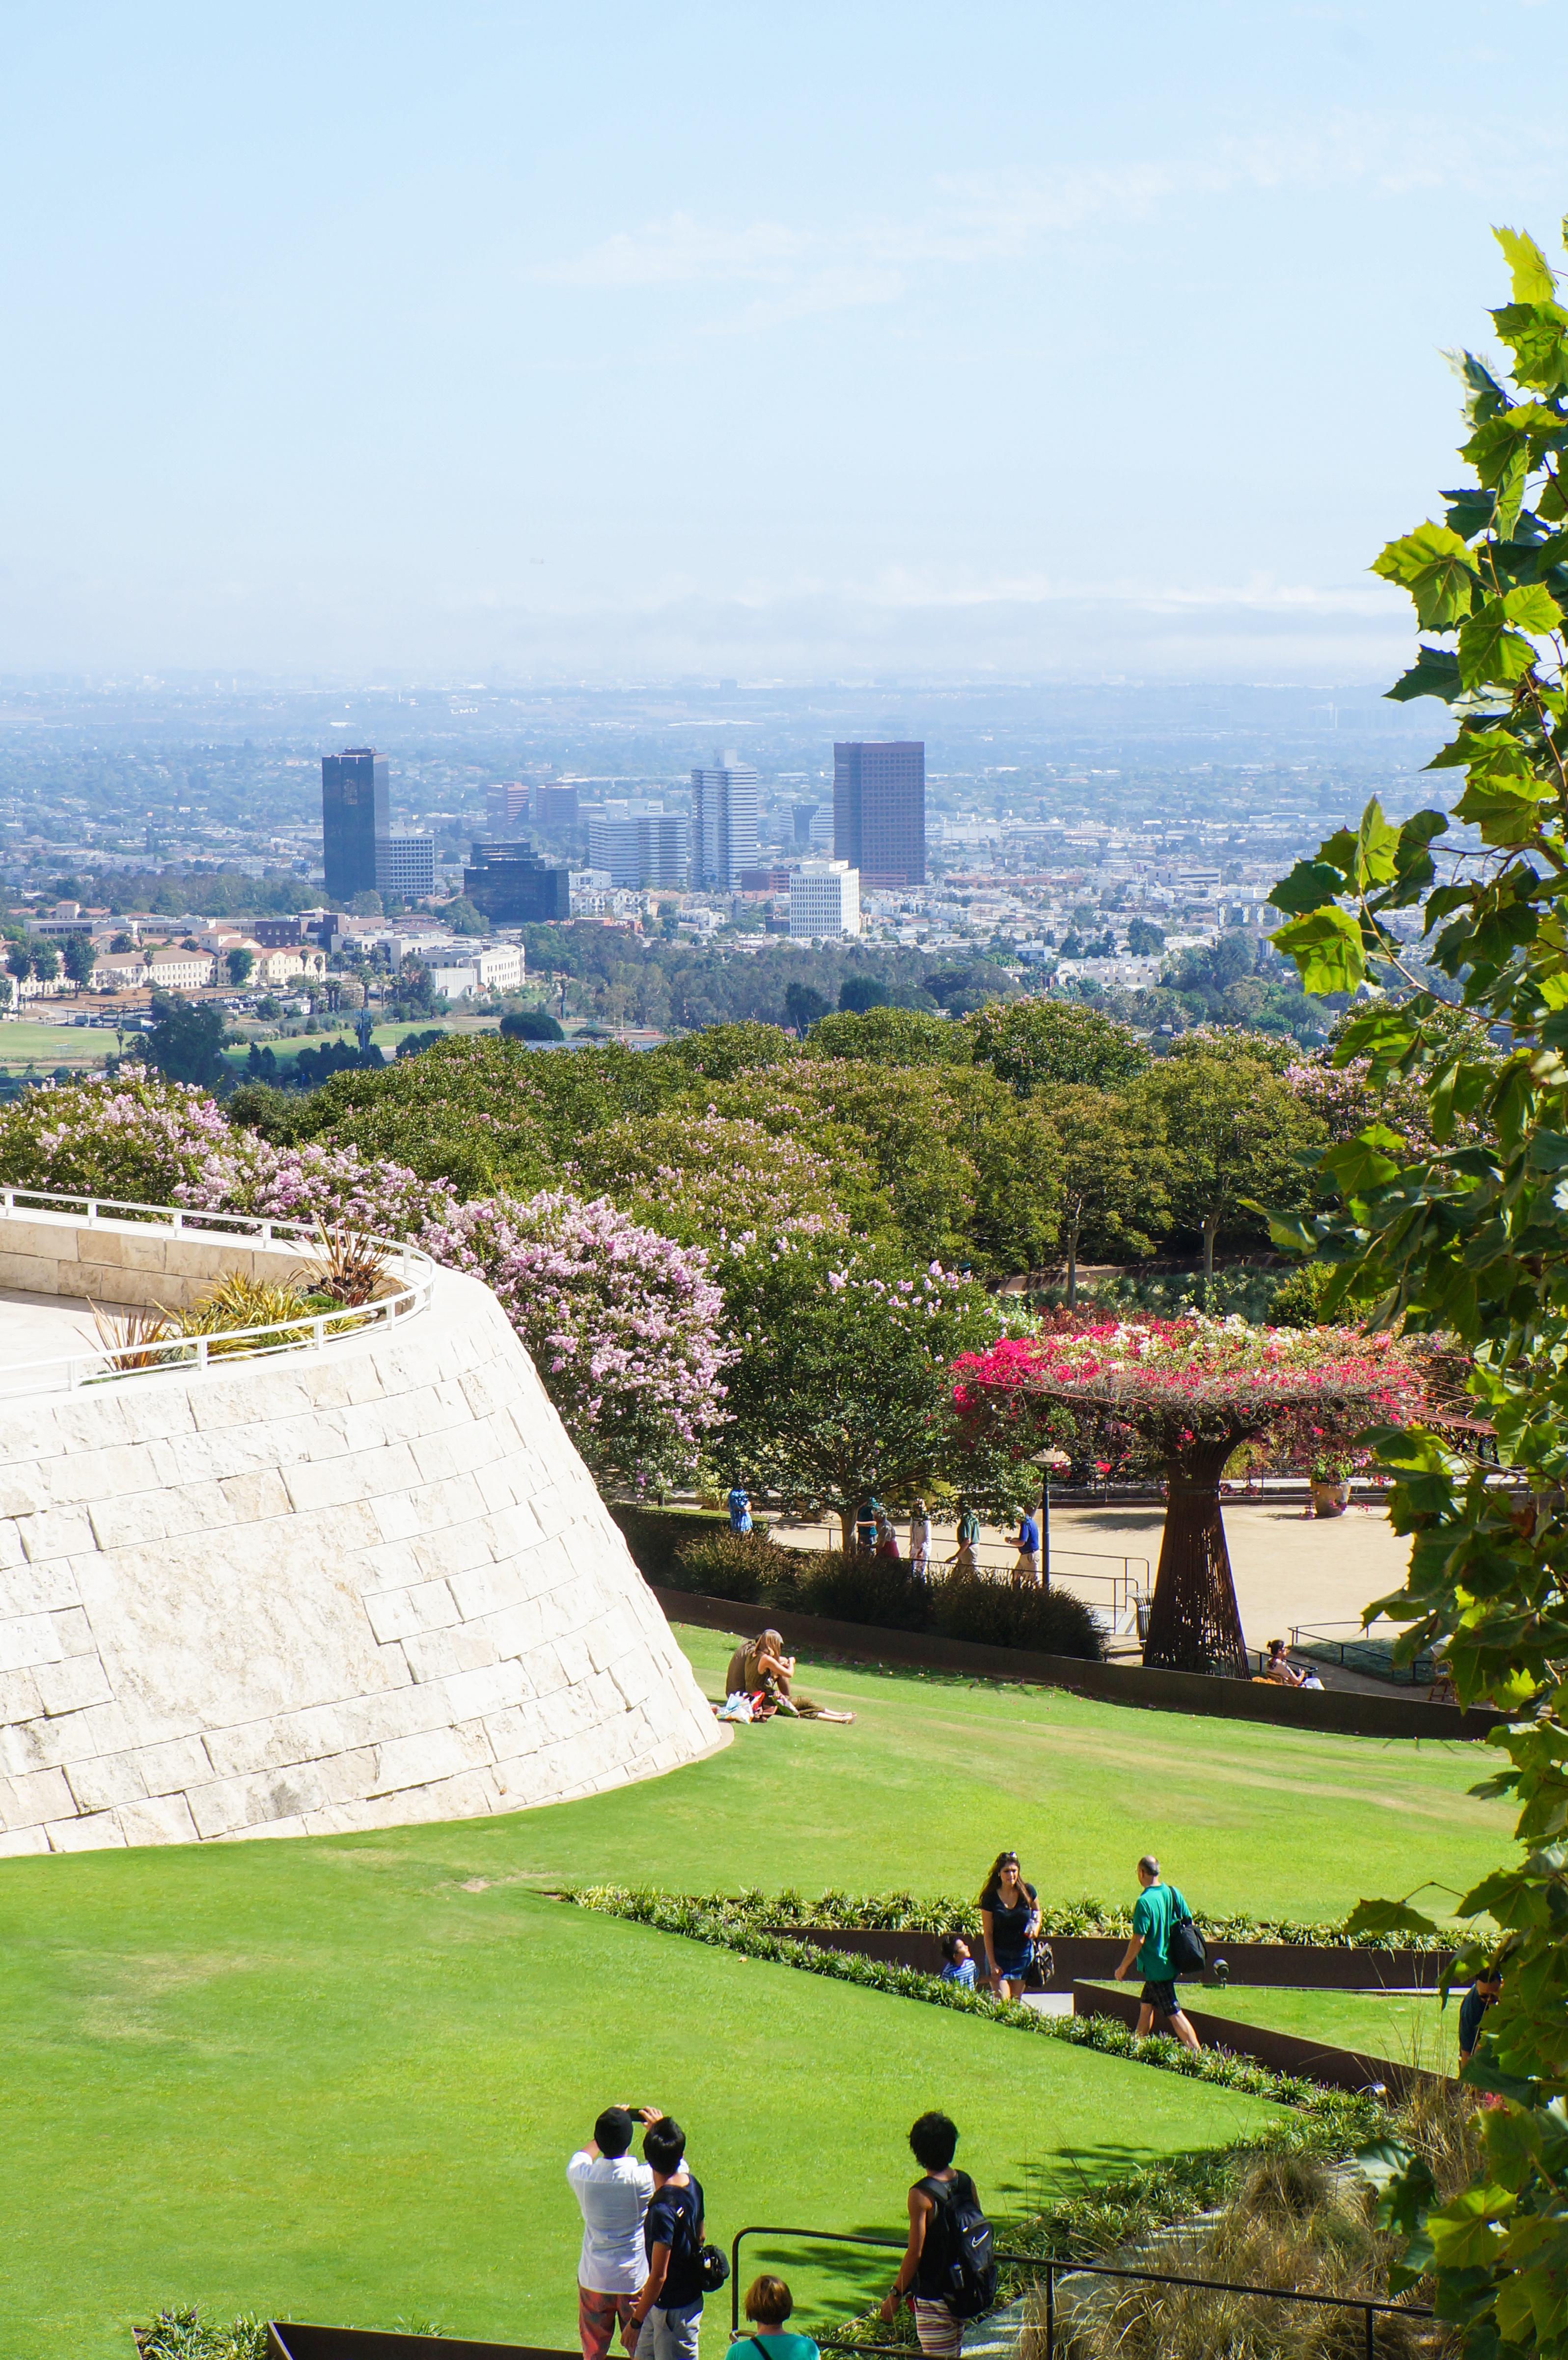 Robert Irwin's Central Garden at the Getty Center (J. Paul Getty Museum) with Los Angeles city view, California, United States